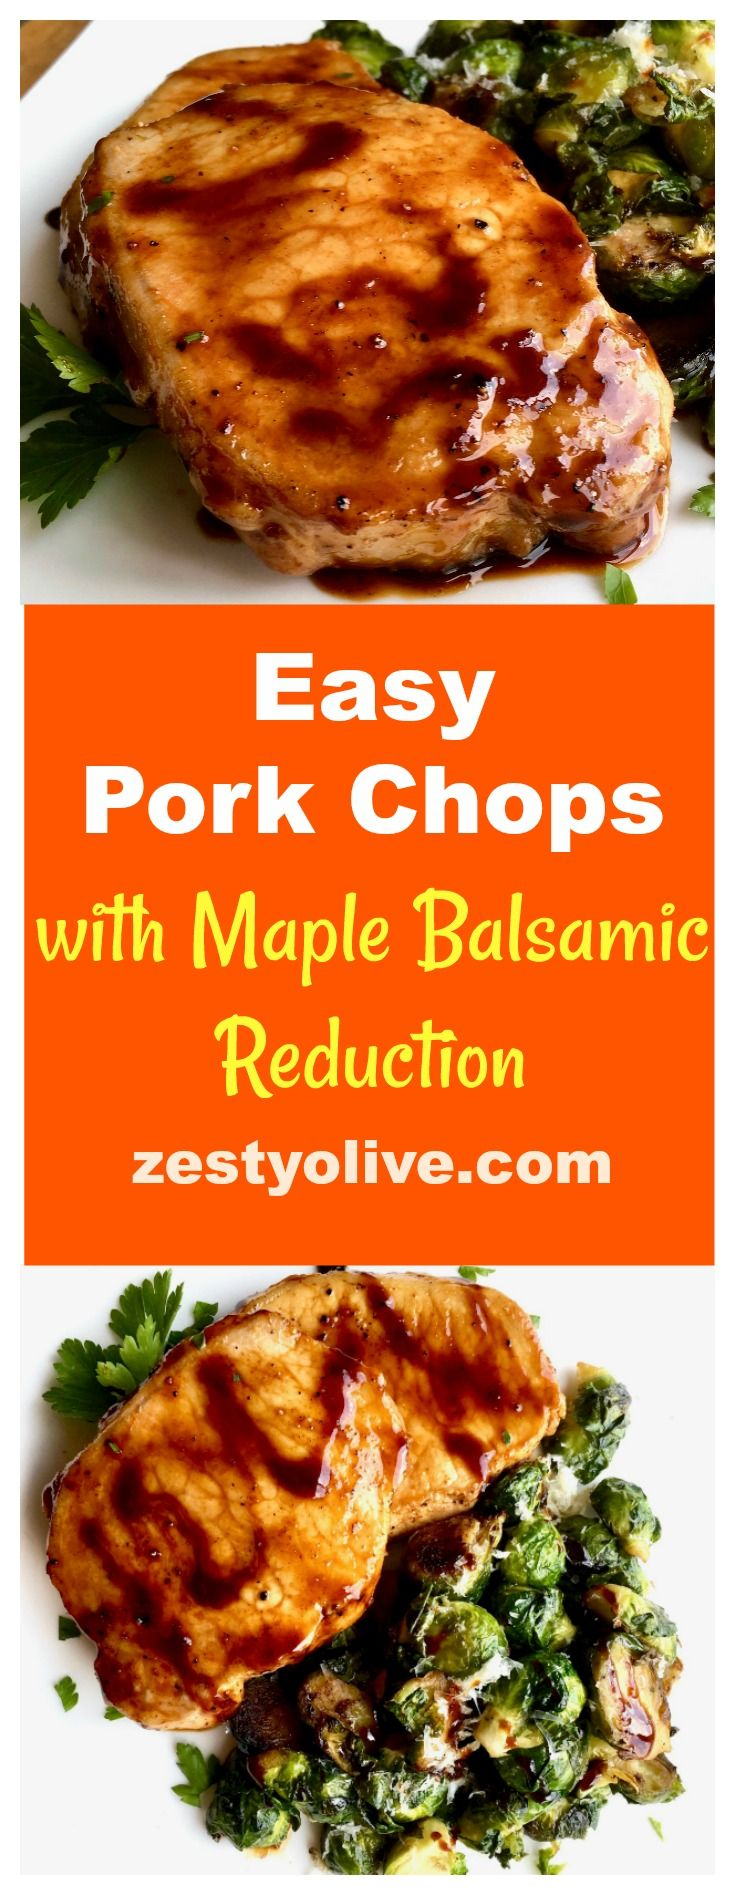 Have this easy skillet Pork Chops with Maple Balsamic Reduction on the table in under 30 minutes. Perfect for a weeknight meal. #recipes #food #cooking #porkchops #balsamic #mealplan #easyrecipes